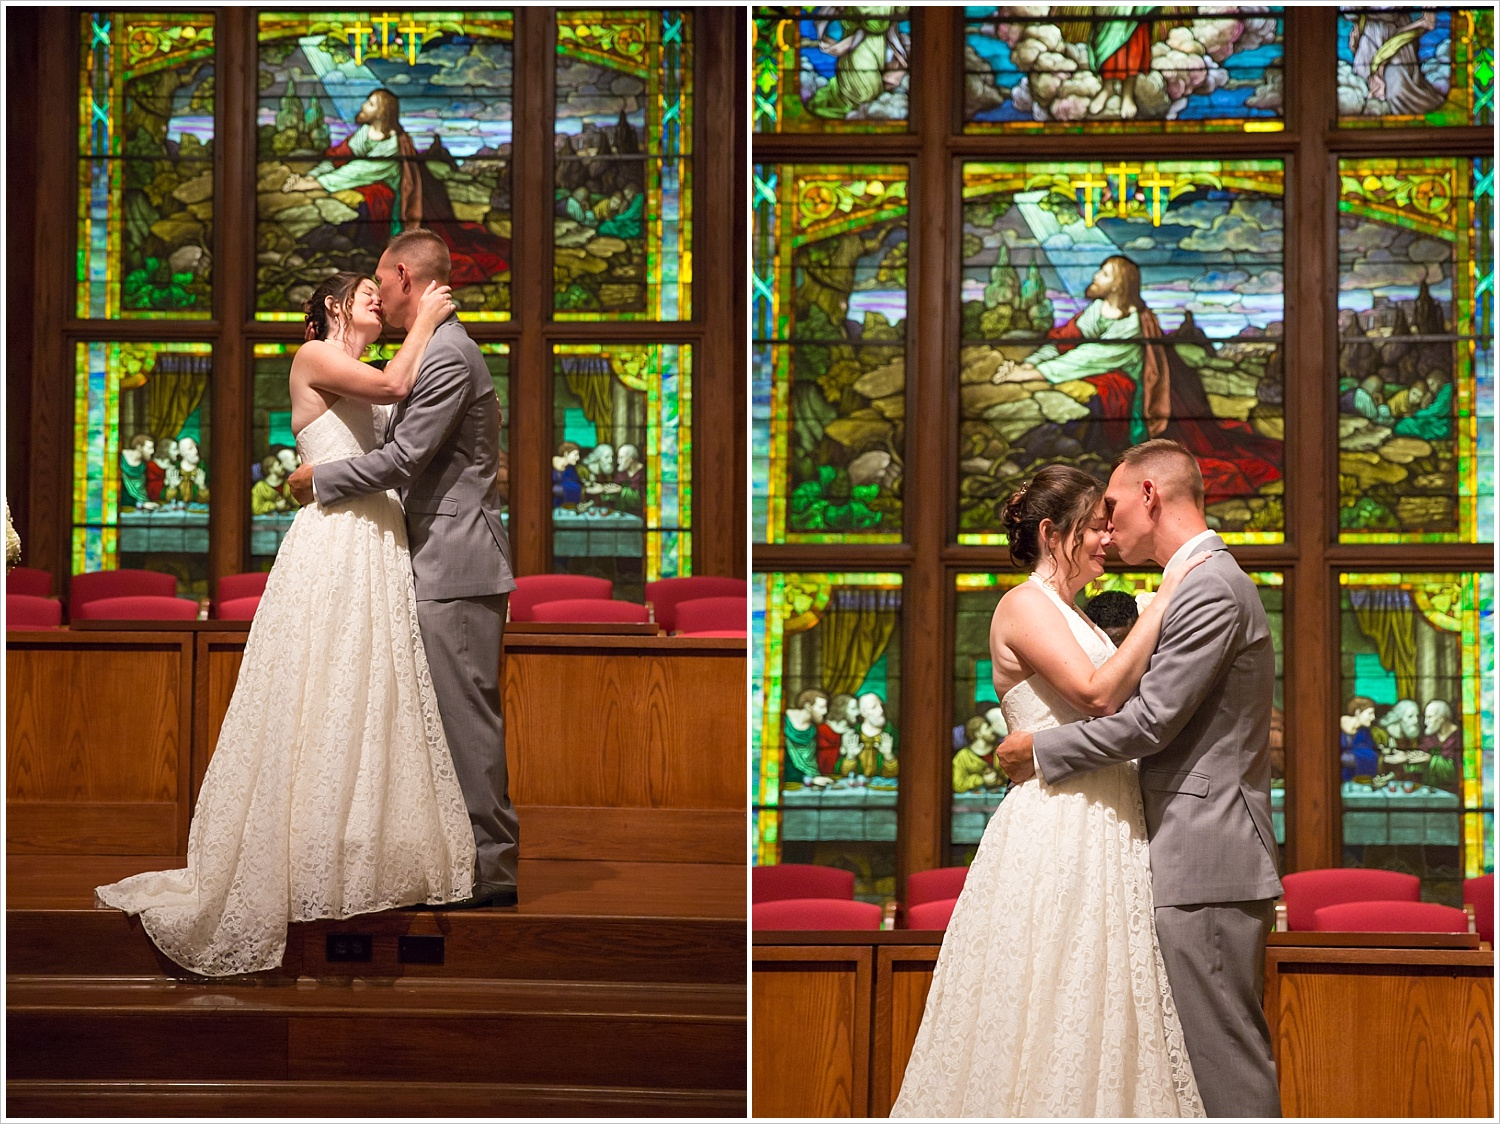 Bride and groom kiss in front of the stained glass in the sanctuary of Central Presbyterian Church in Waco/Woodway, TX - Jason & Melaina Photography, www.jasonandmelaina.com